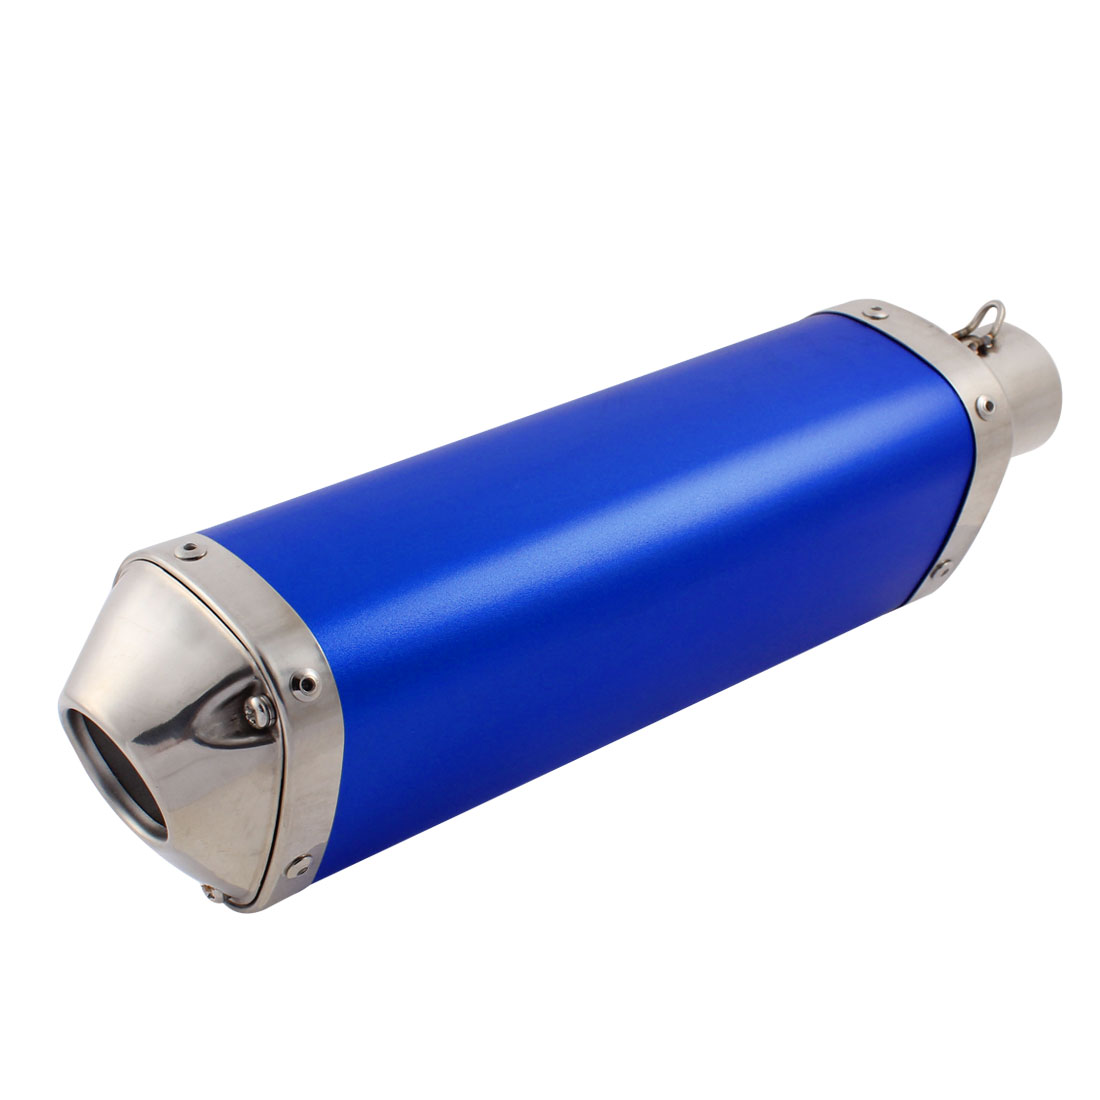 Blue Stainless Steel Exhaust Pipe Muffler Tip for Motorcycle Motorbike